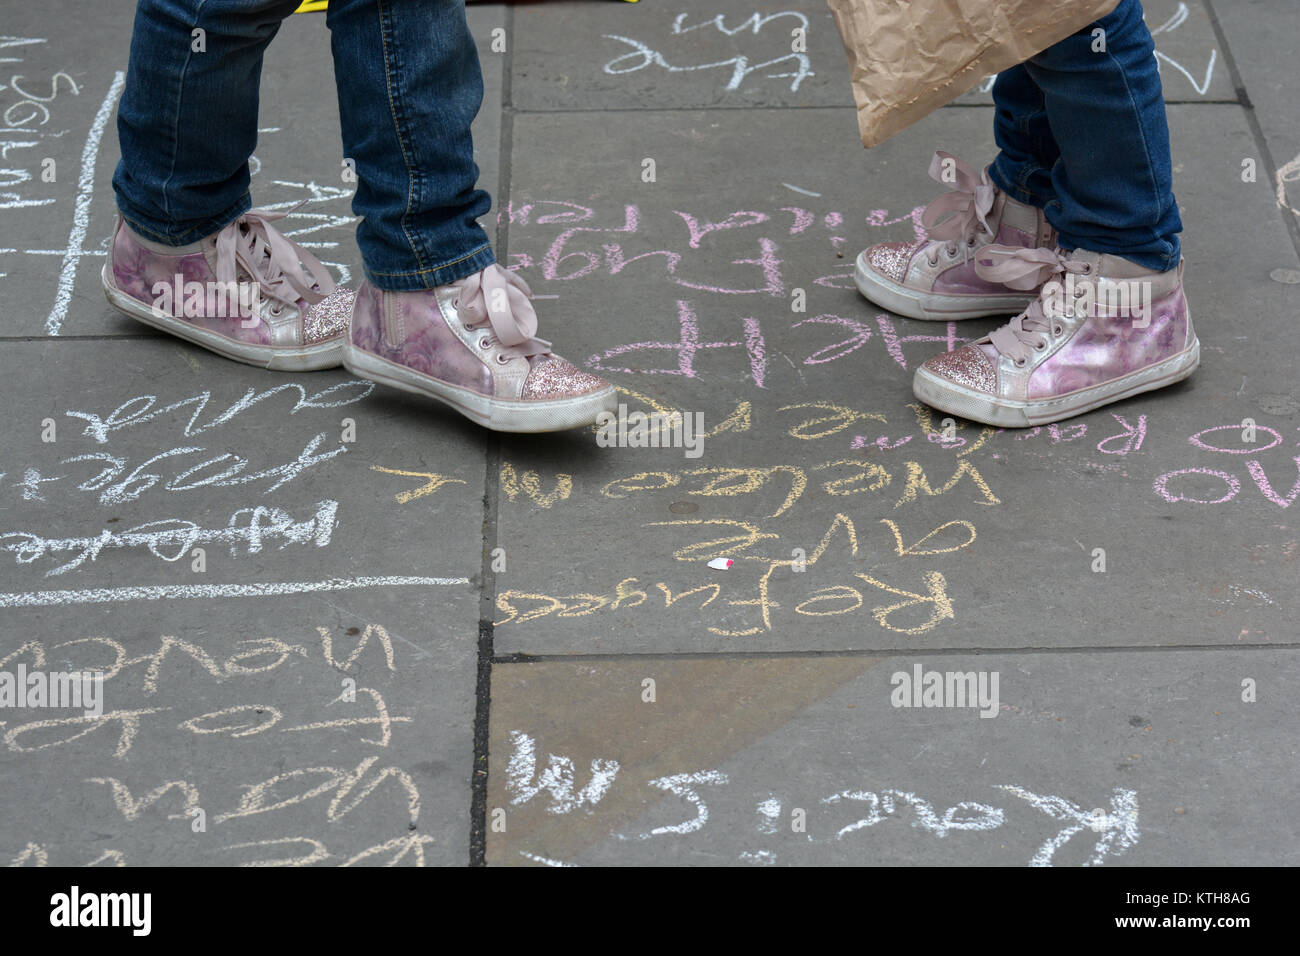 """""""Refugees are welcome here"""" and """"Help refugee children"""" messages are written on the pavement by children protesting - Stock Image"""